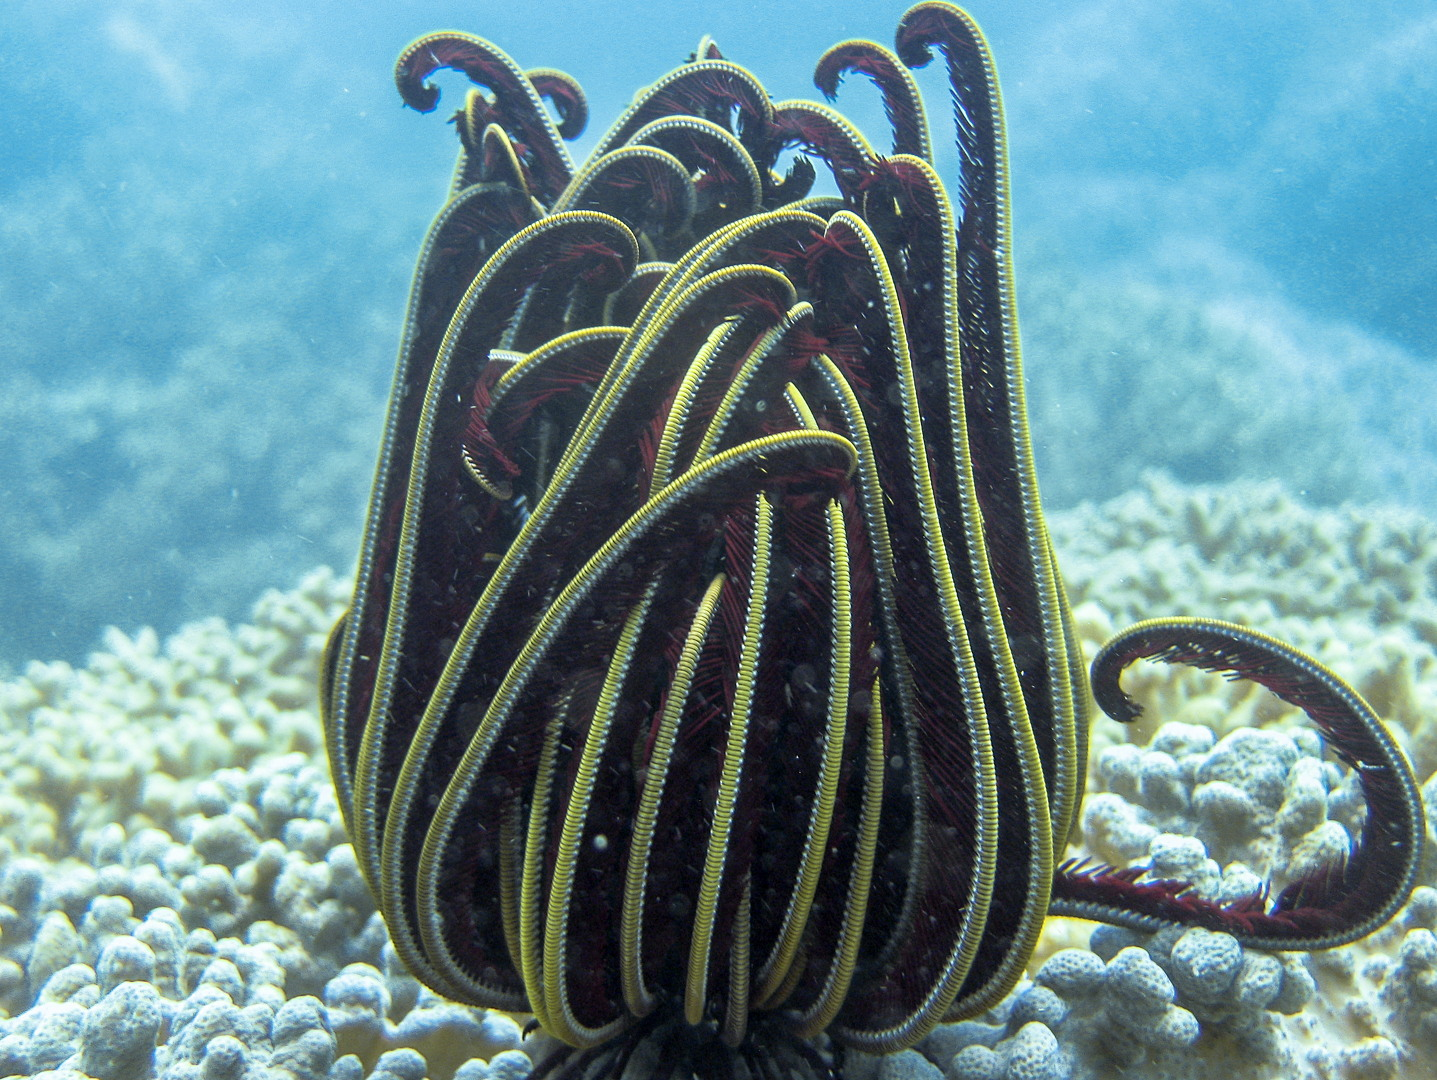 Морские лилии, Crinoid feather star (Crinoidea)